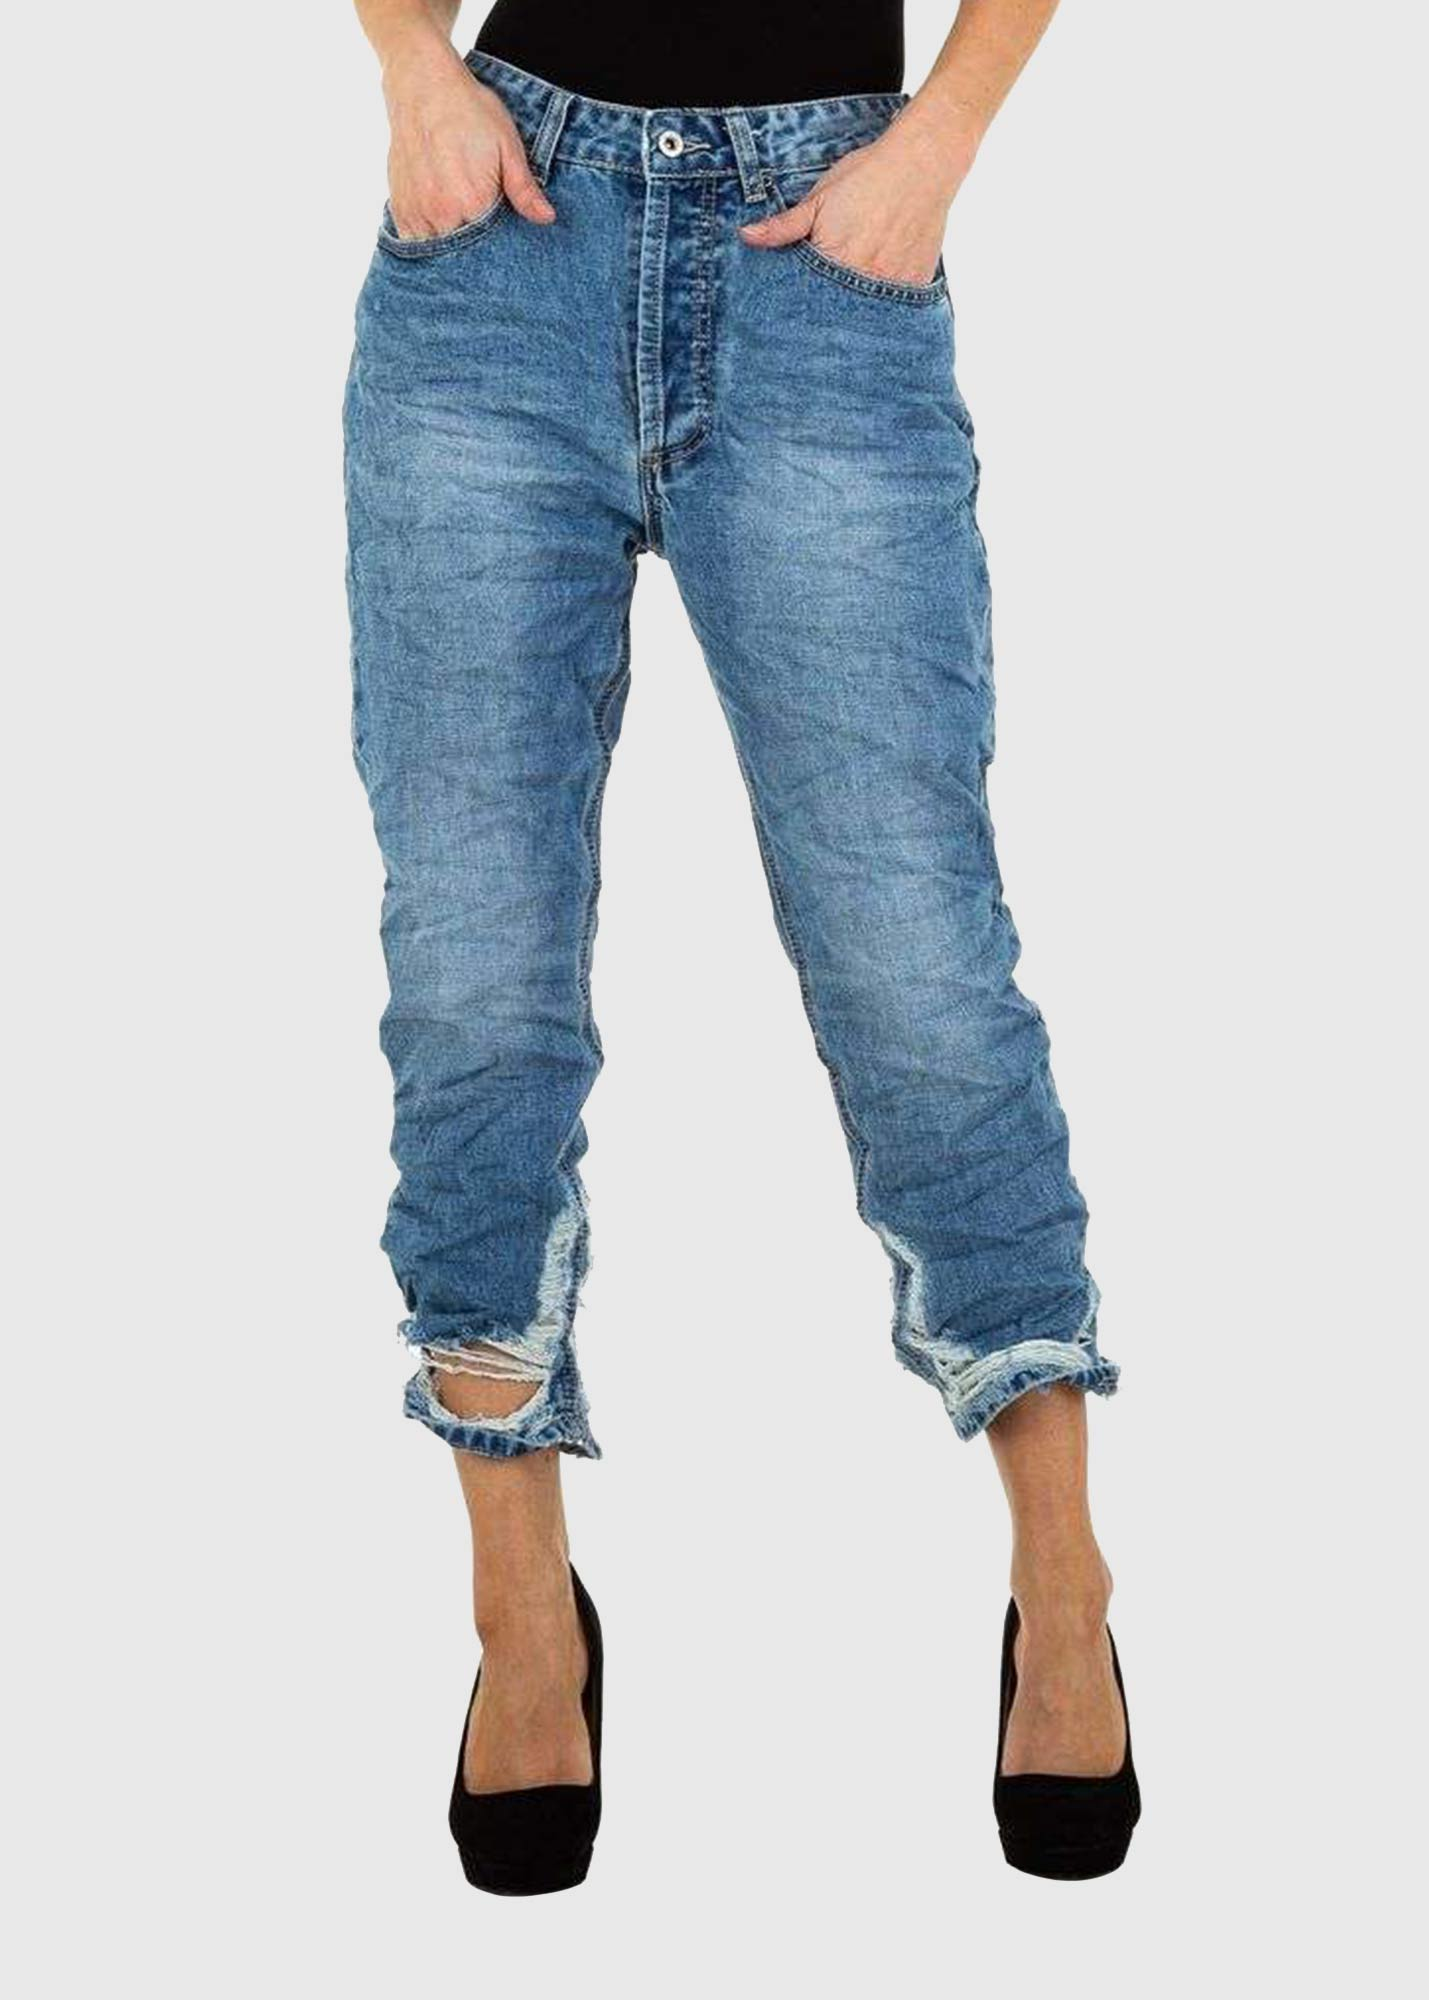 Ornella Skinny Fit blue ripped jeans